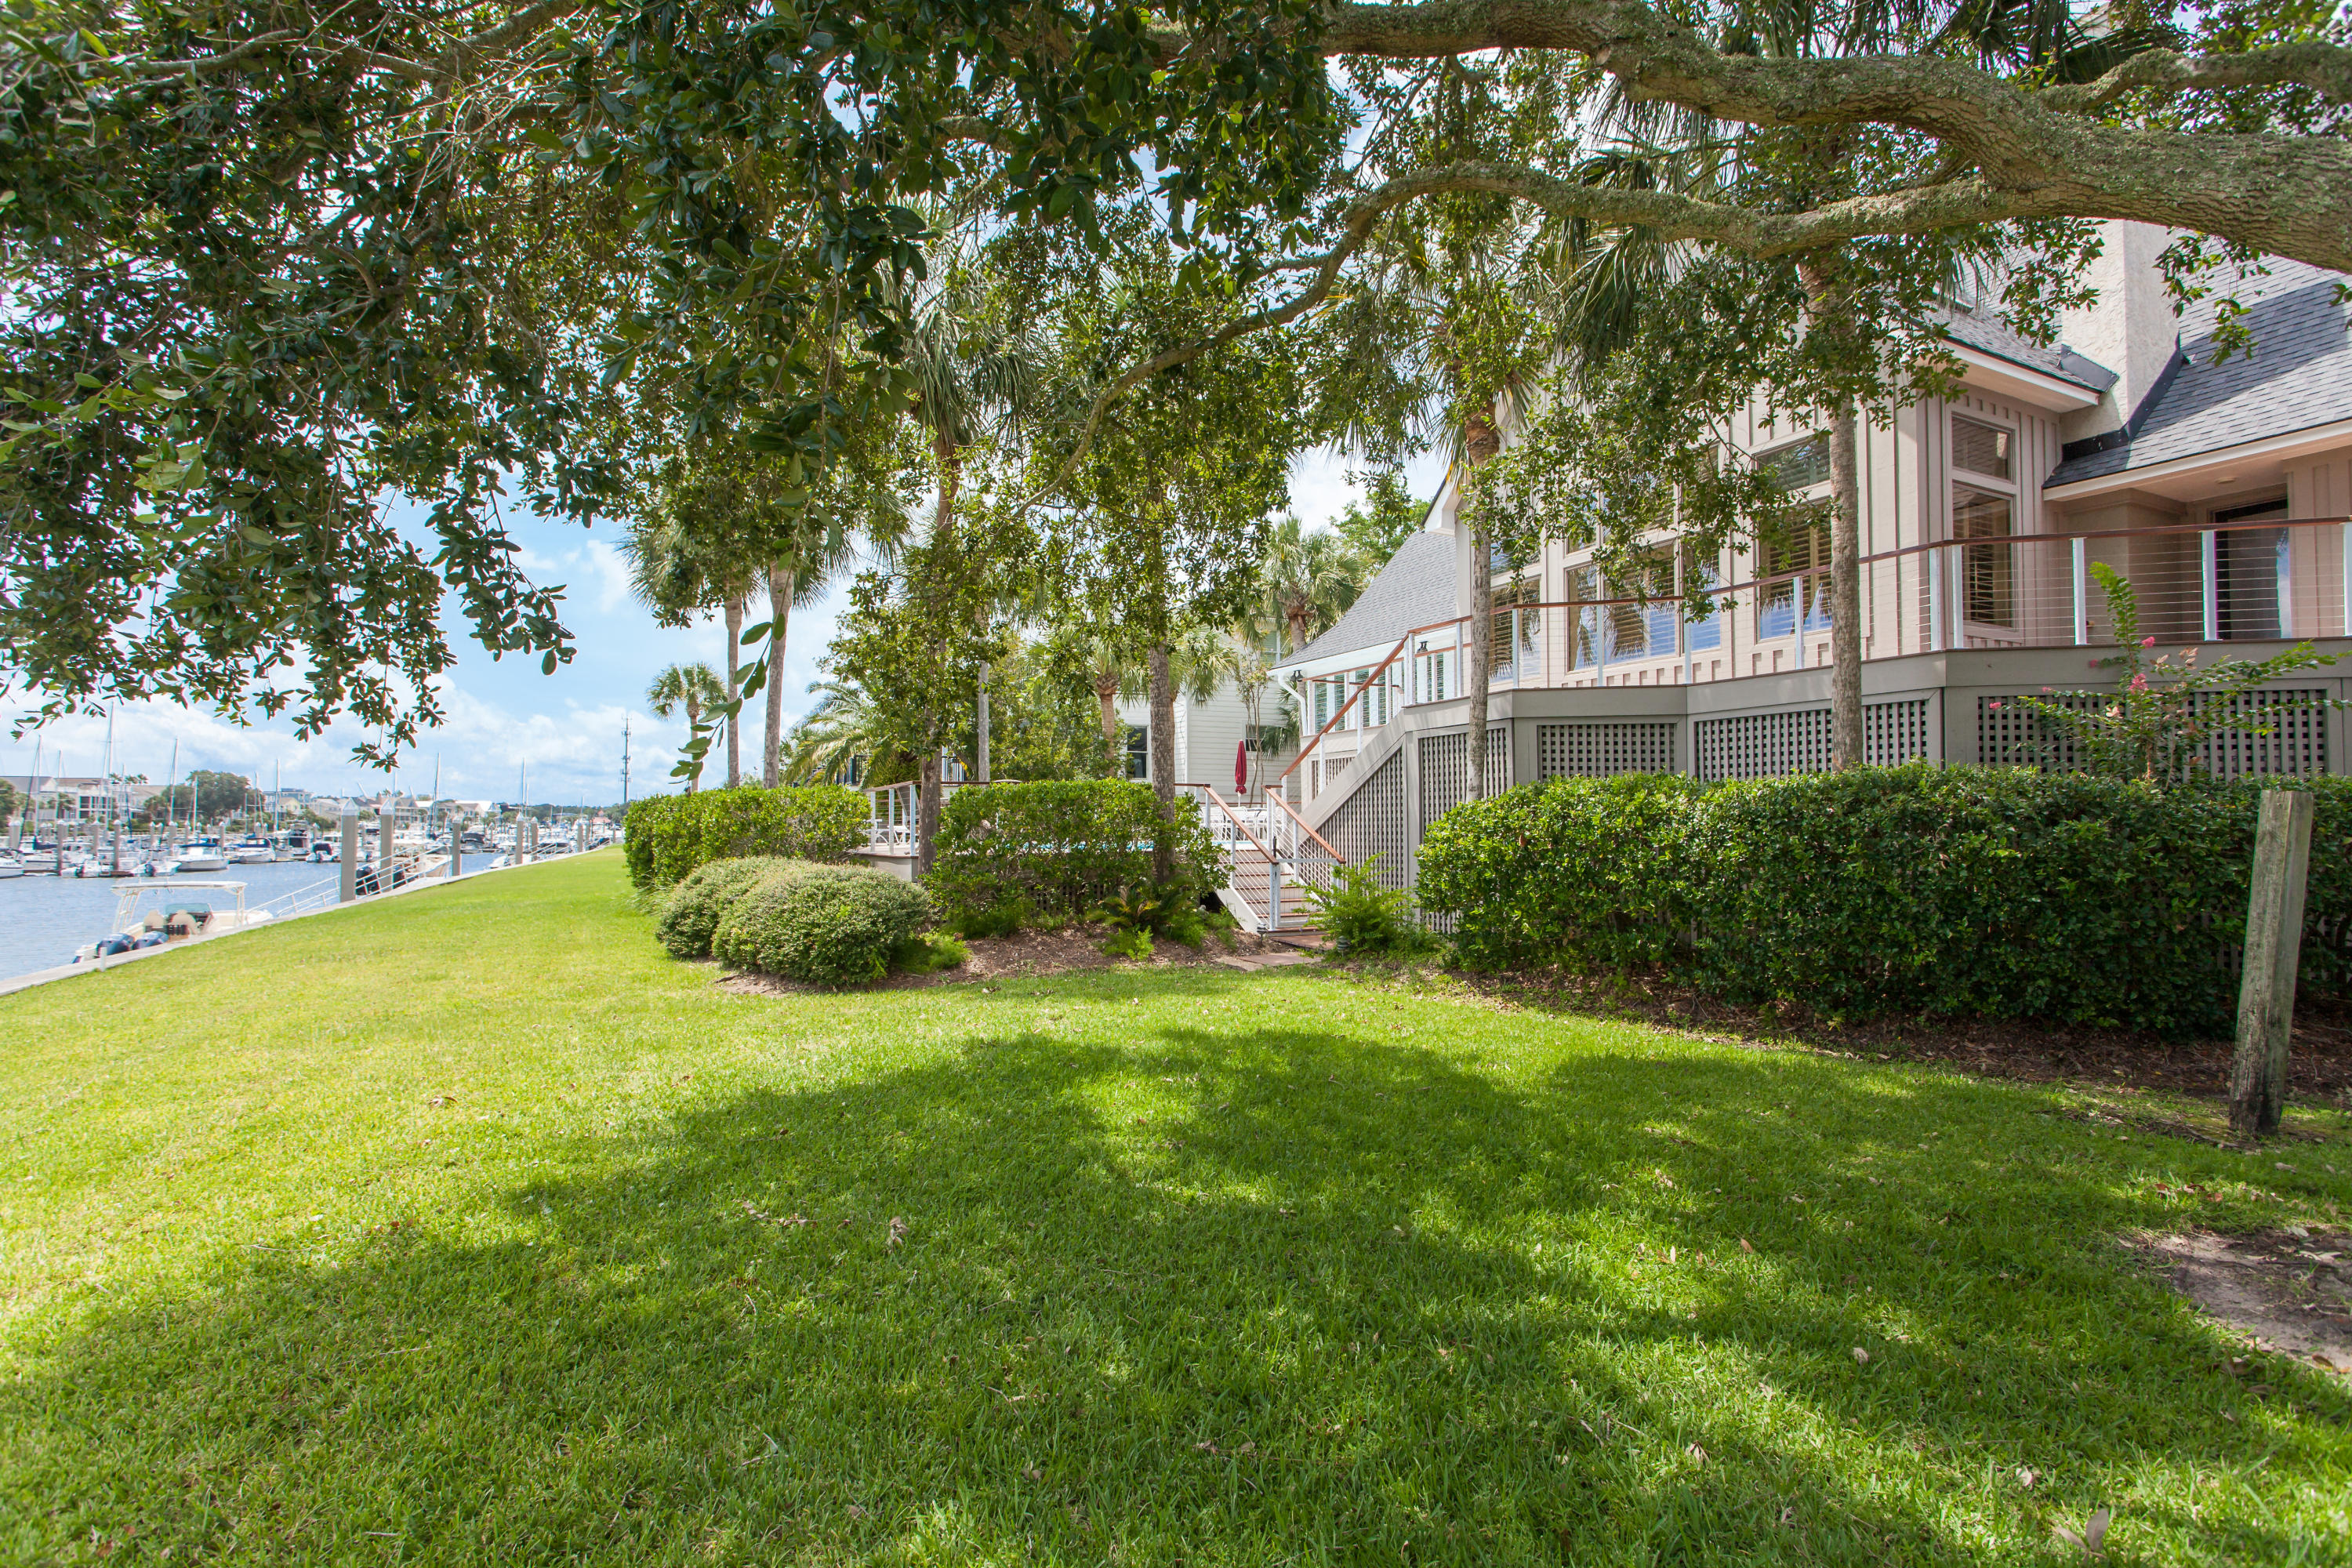 Wild Dunes Homes For Sale - 47 Waterway Island, Isle of Palms, SC - 5